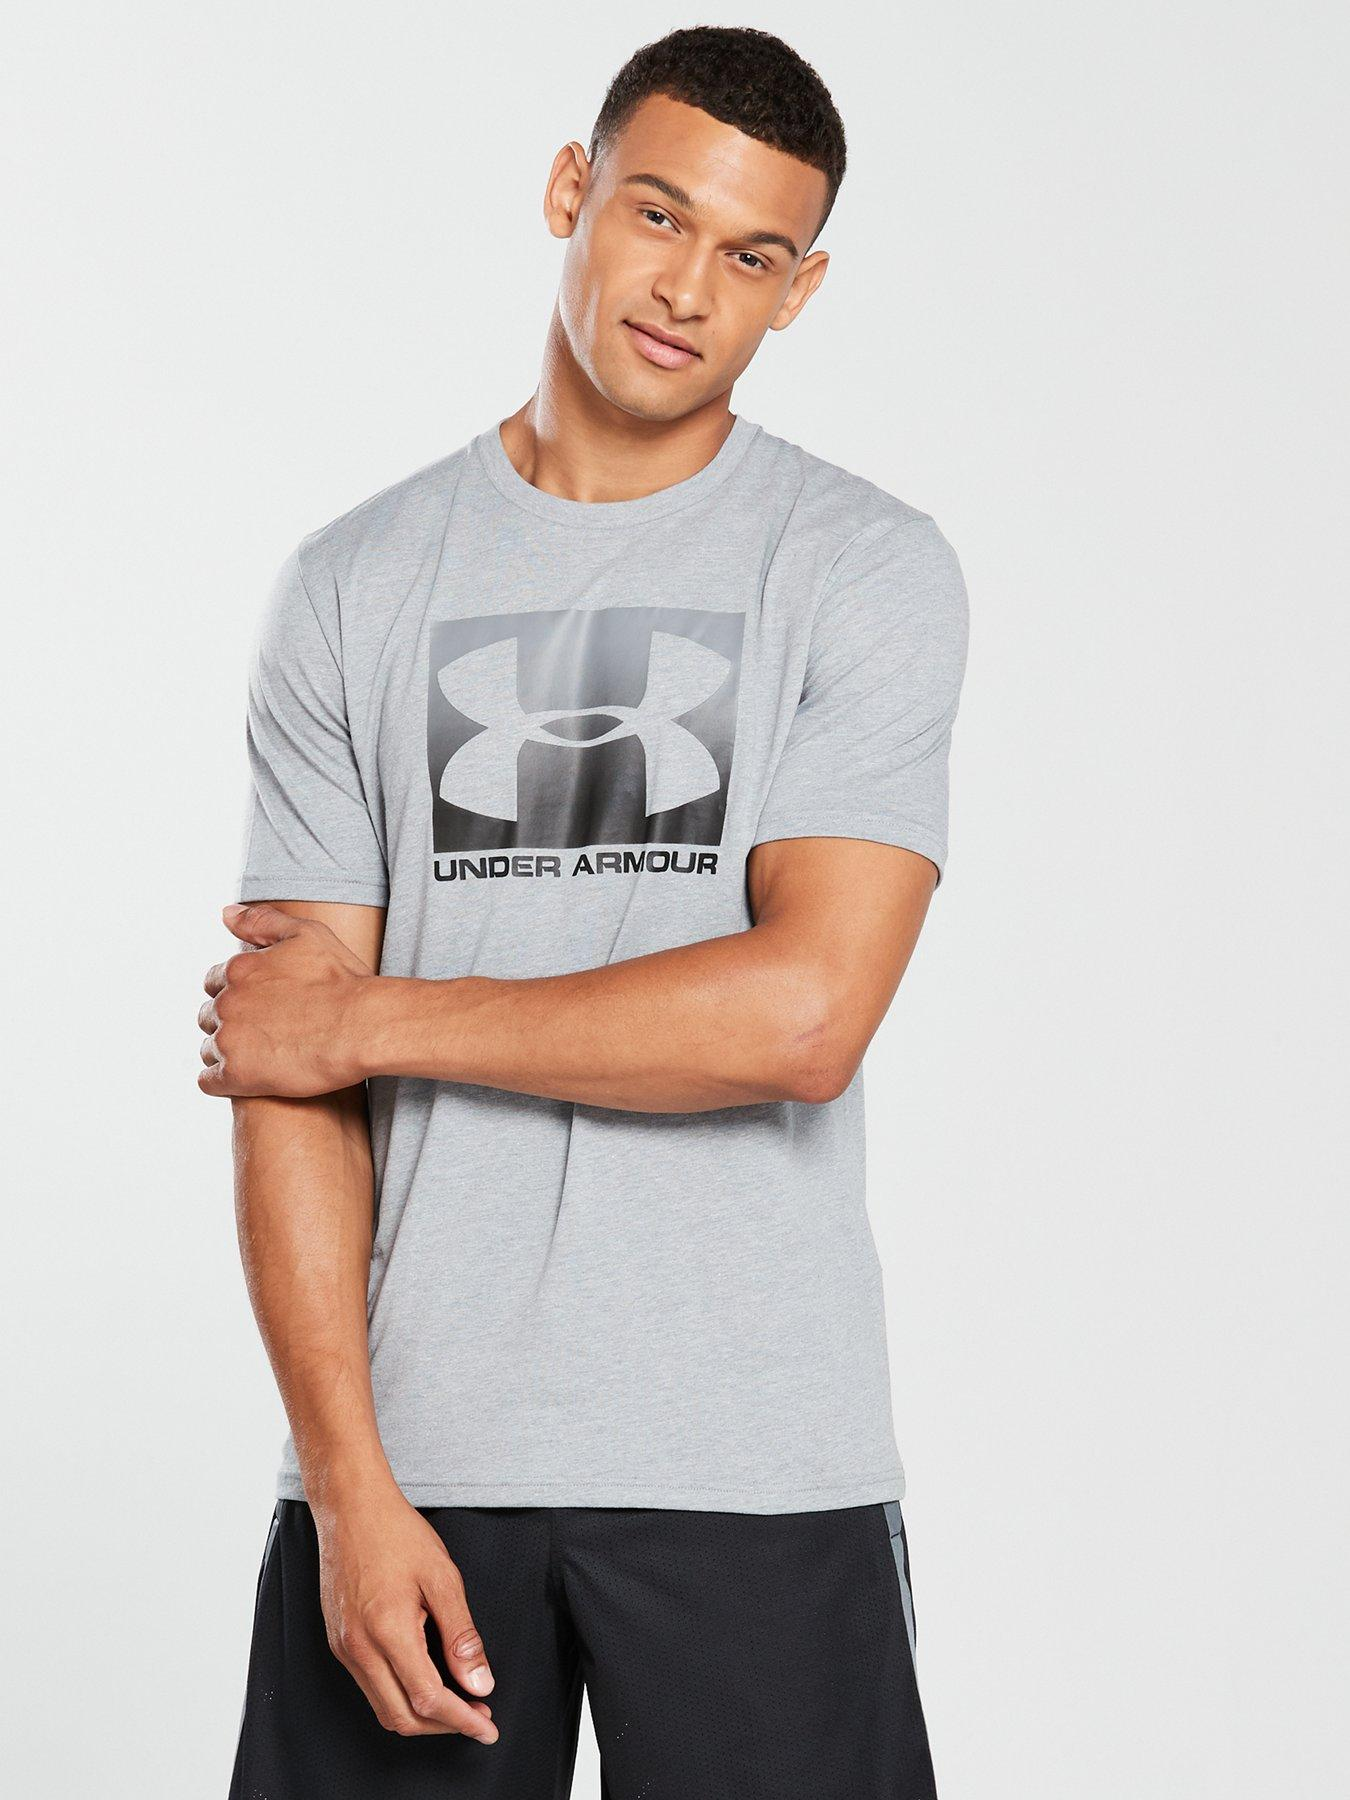 NEW Kids Youth Boys Under Armour UA heatgear Try Another Sport White Tee Shirt